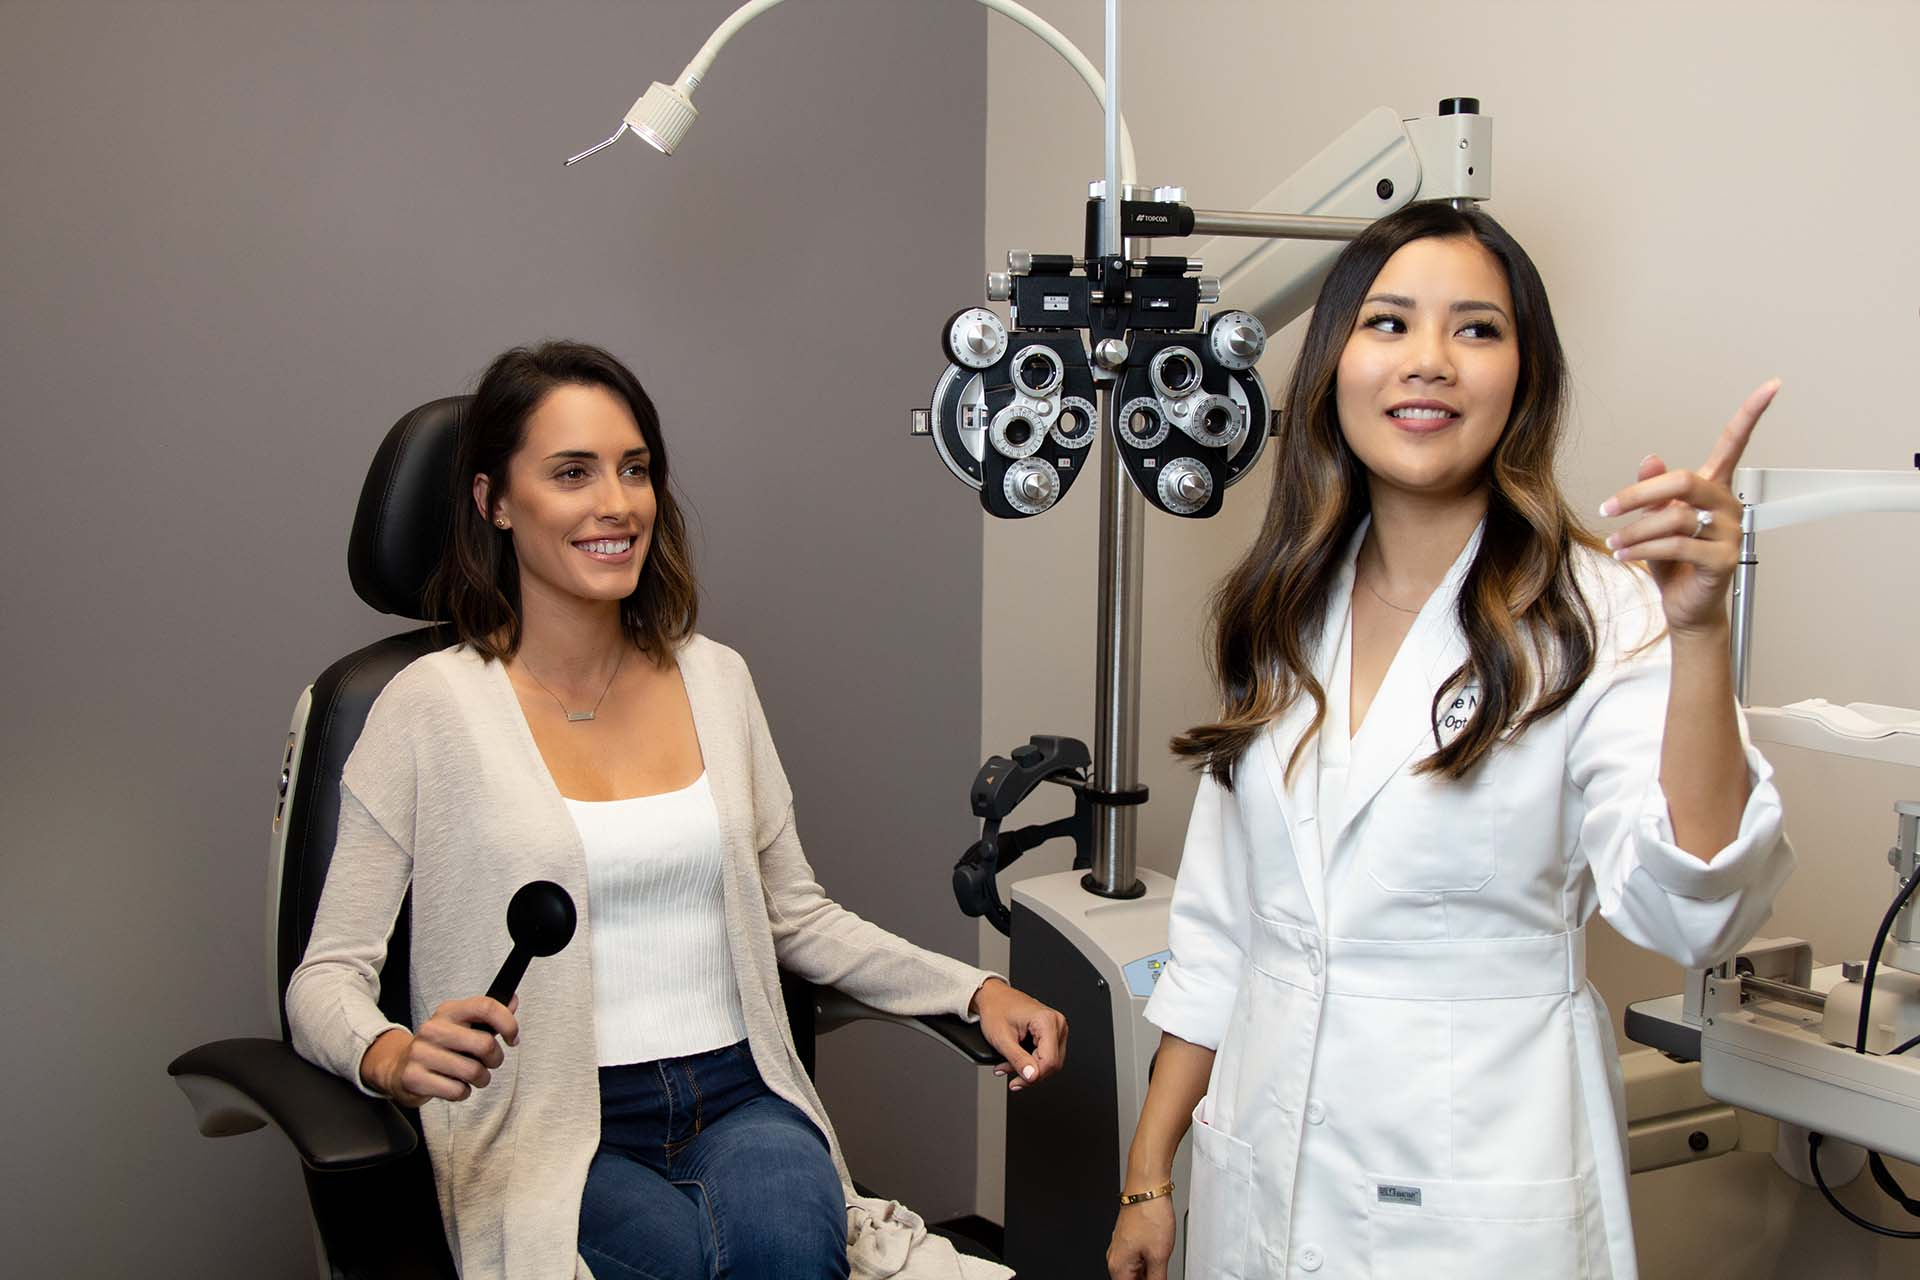 e6418b176b1 Comprehensive Eye exams are a pivotal part of keeping your eyes healthy.  Some of the procedures we conduct during the eye exams are eye dilations